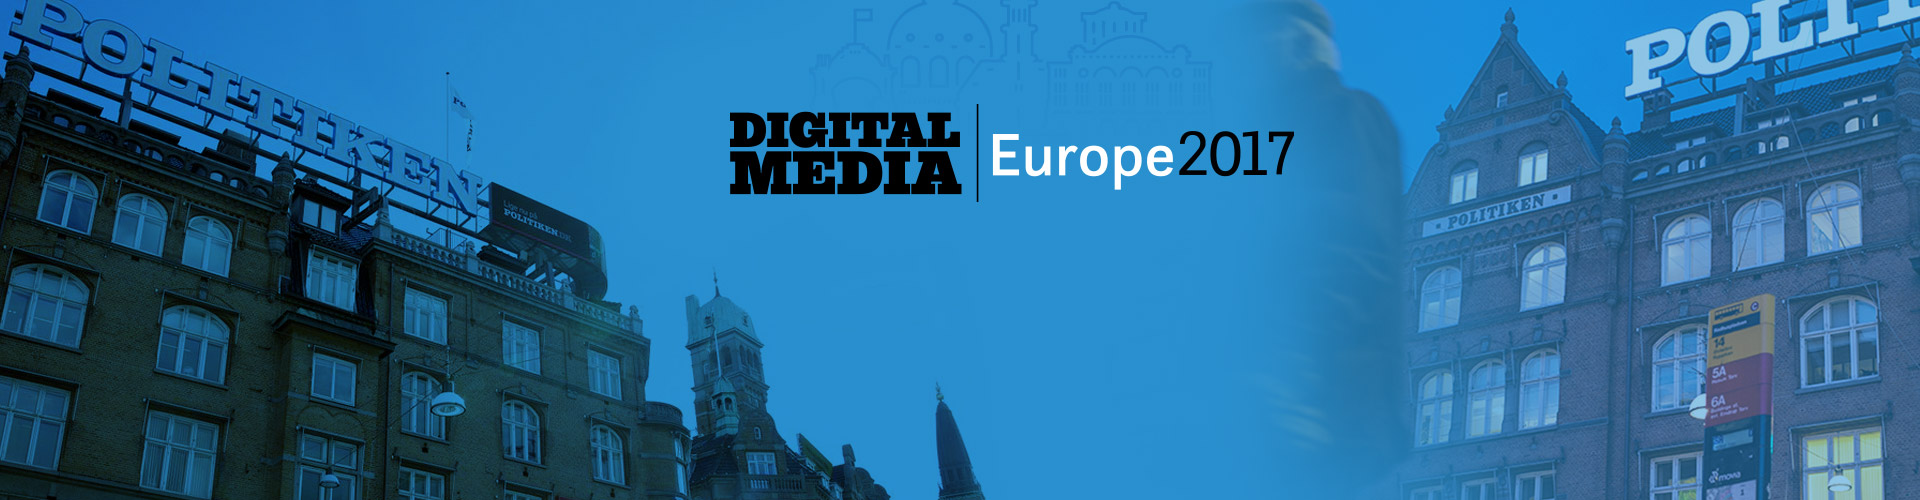 Header image of PageSuite to Exhibit at Digital Media Europe in Copenhagen